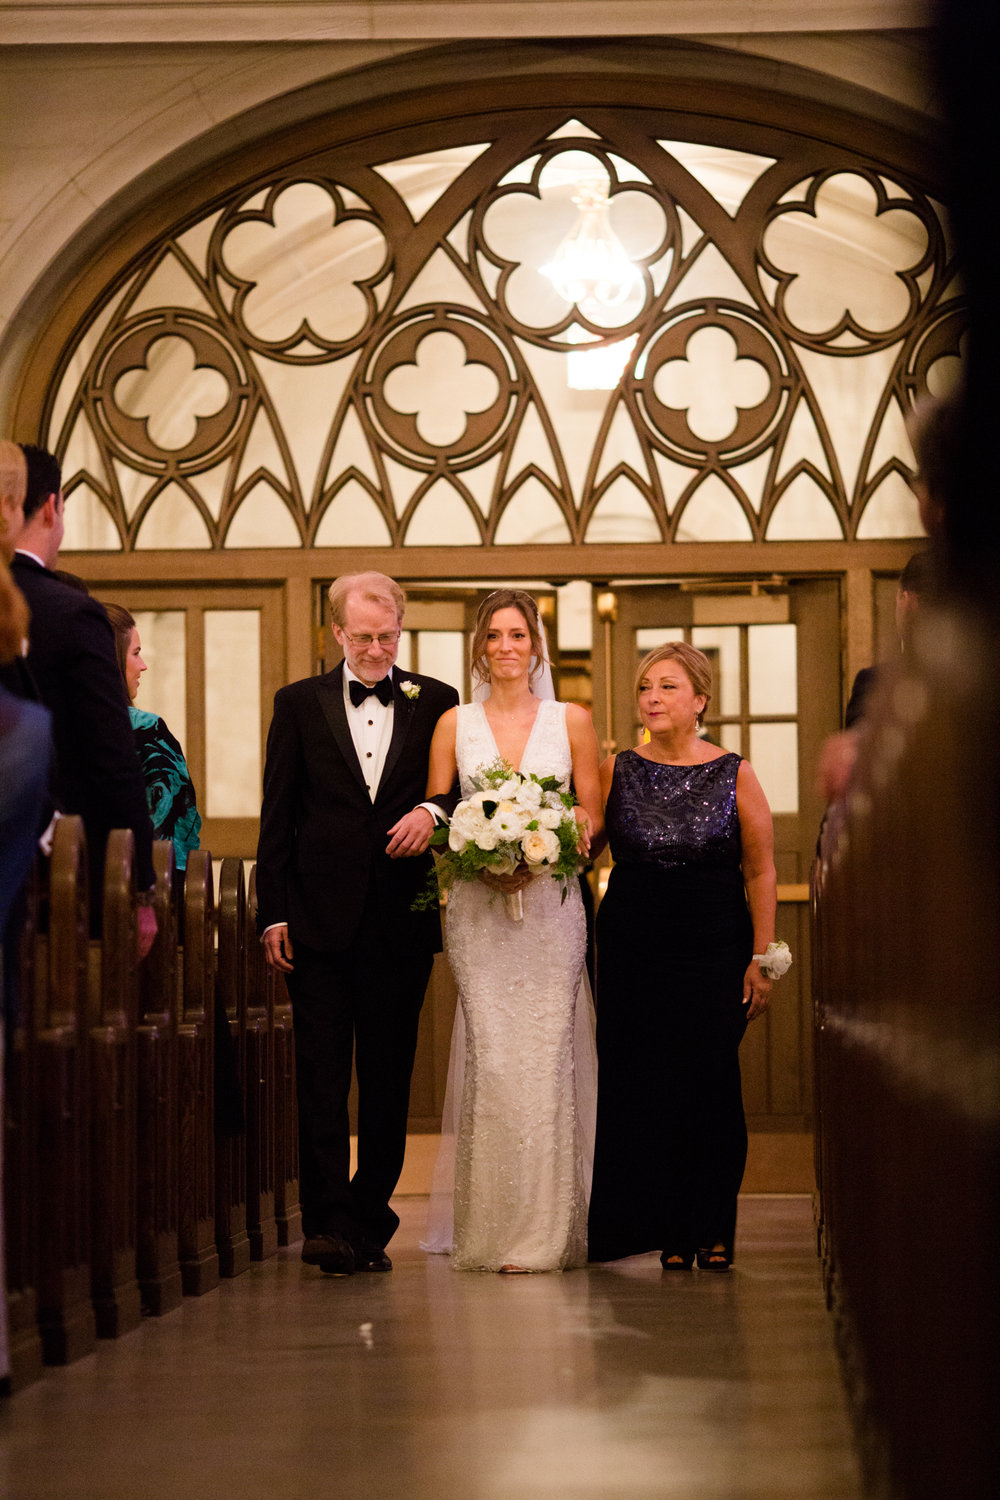 Bride walks down the aisle at St James Chapel wedding ceremony.